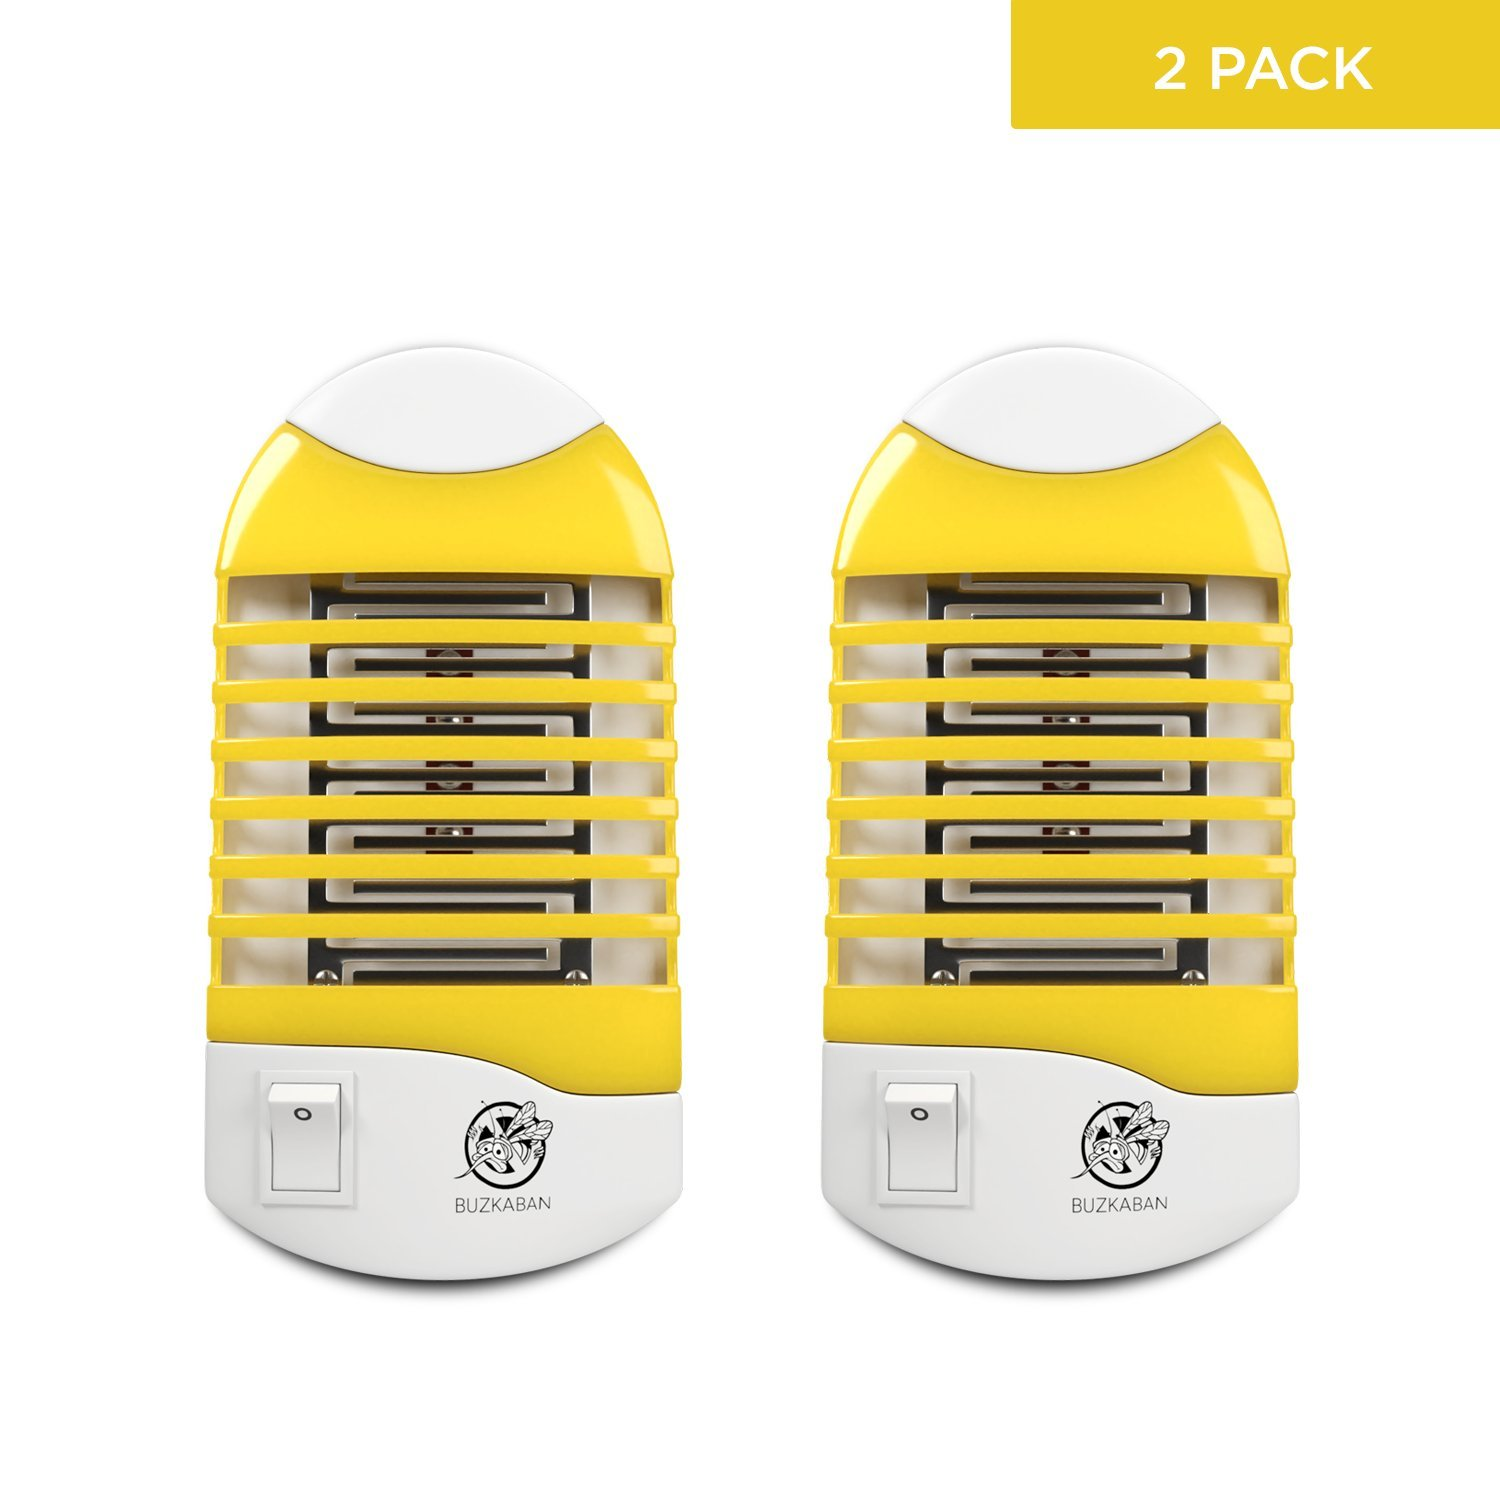 Mosquito Zapper - Electronic Fly Killer - Indoor Bug Zapper Insect Killer - Best Gnat Trap 2 Pack Yellow Color (12) by Markinn